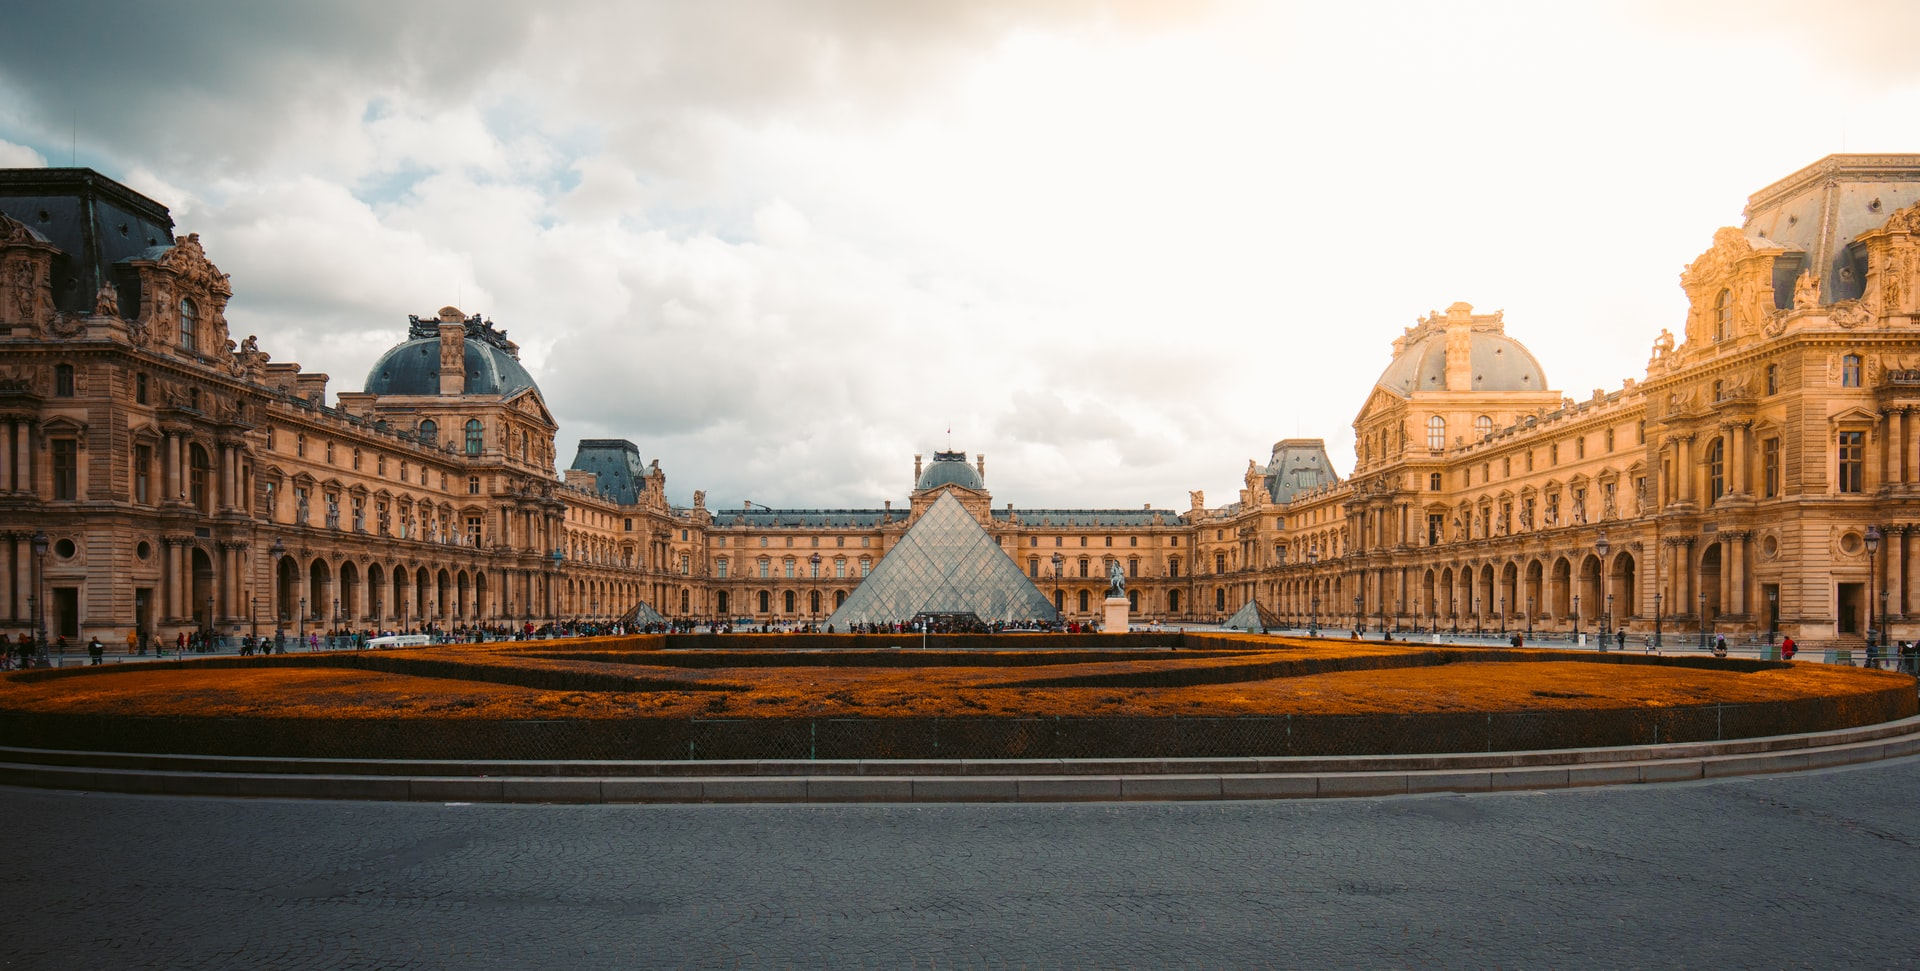 Panorama of the Louvre museum outside